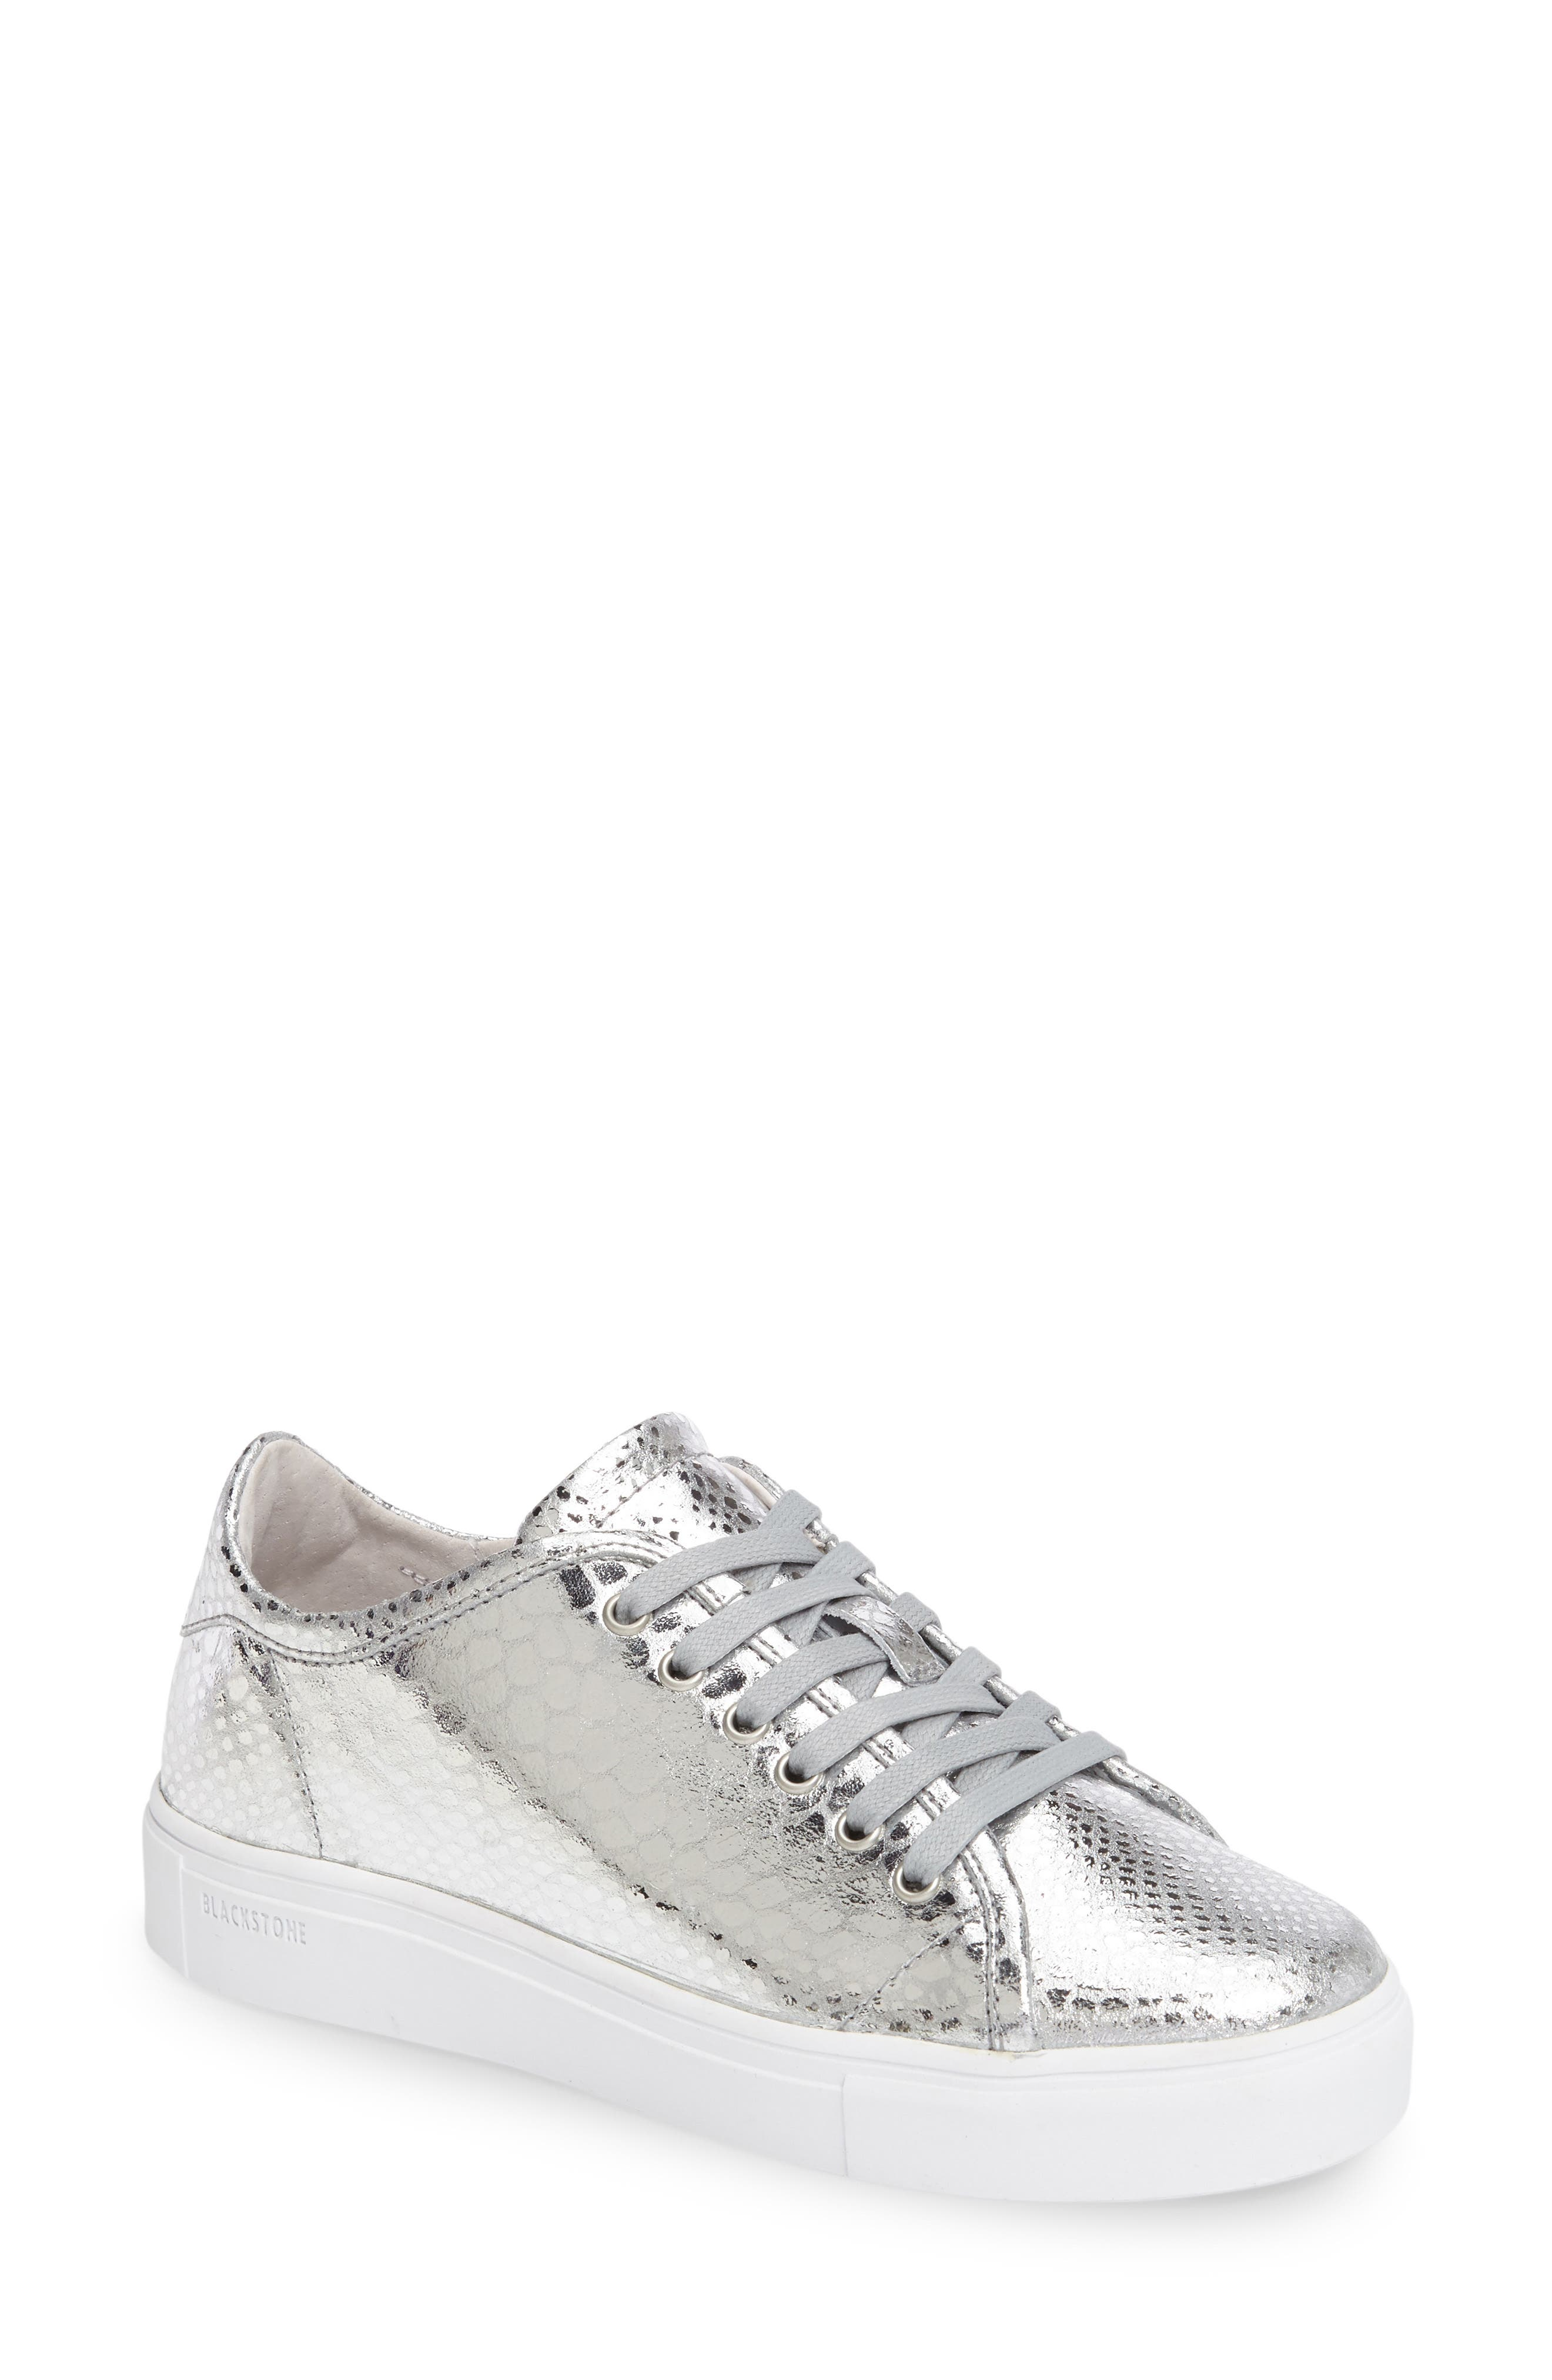 NL32 Sneaker,                         Main,                         color, Silver Leather